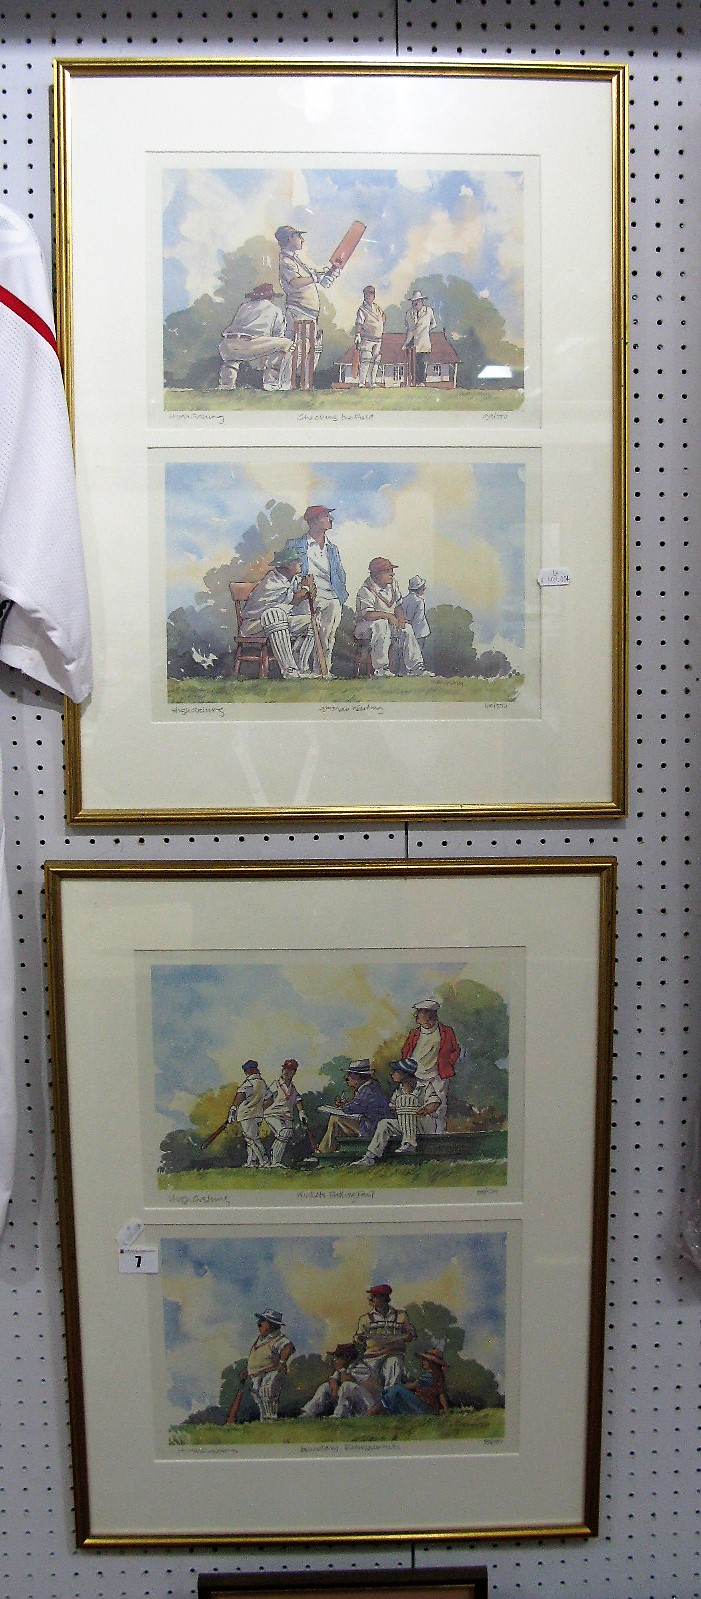 Lot 7 - Four Hugh Cushing Limited Edition Cricket Theme Prints, including 'Boundary Refreshments', 'Checking